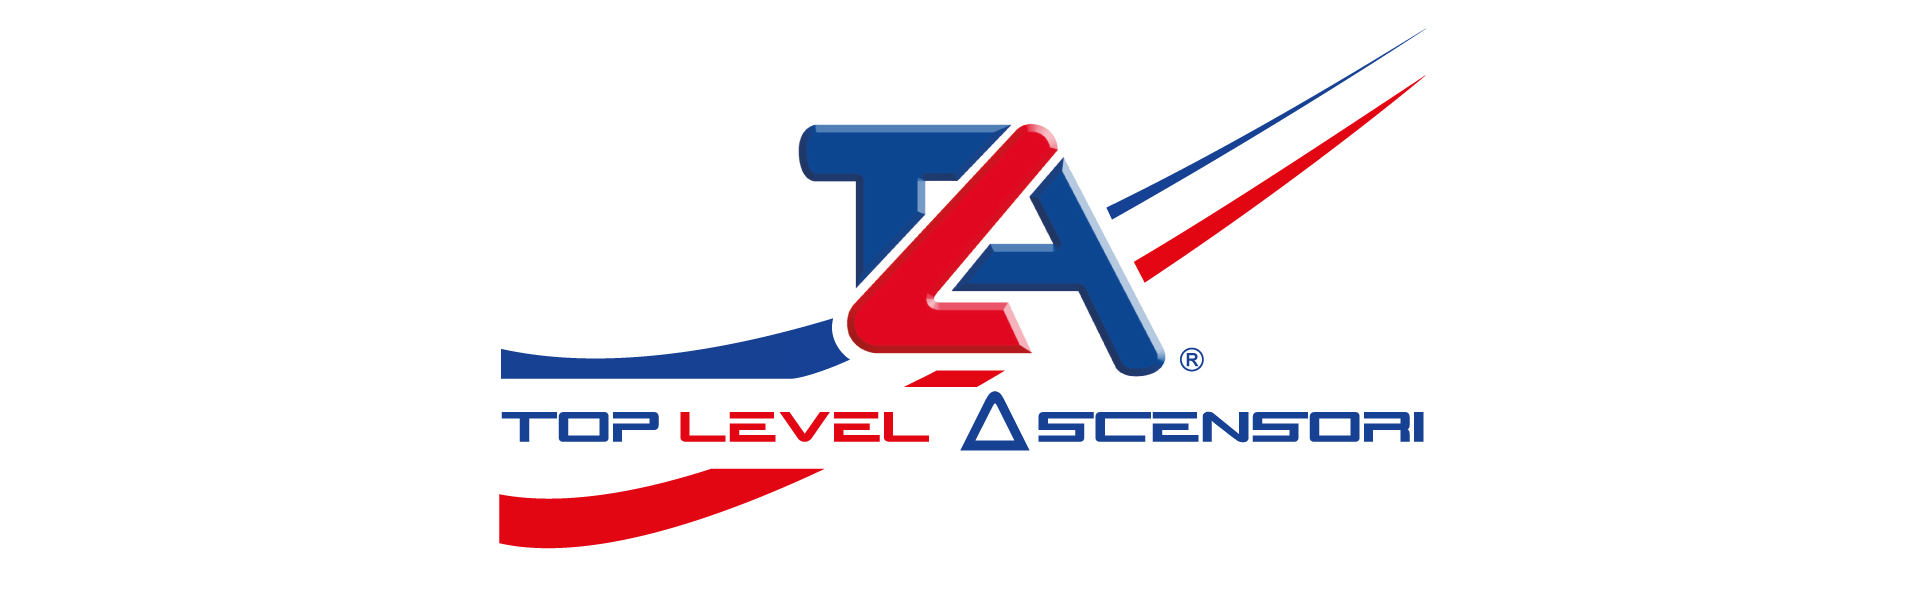 logo top level ascensori